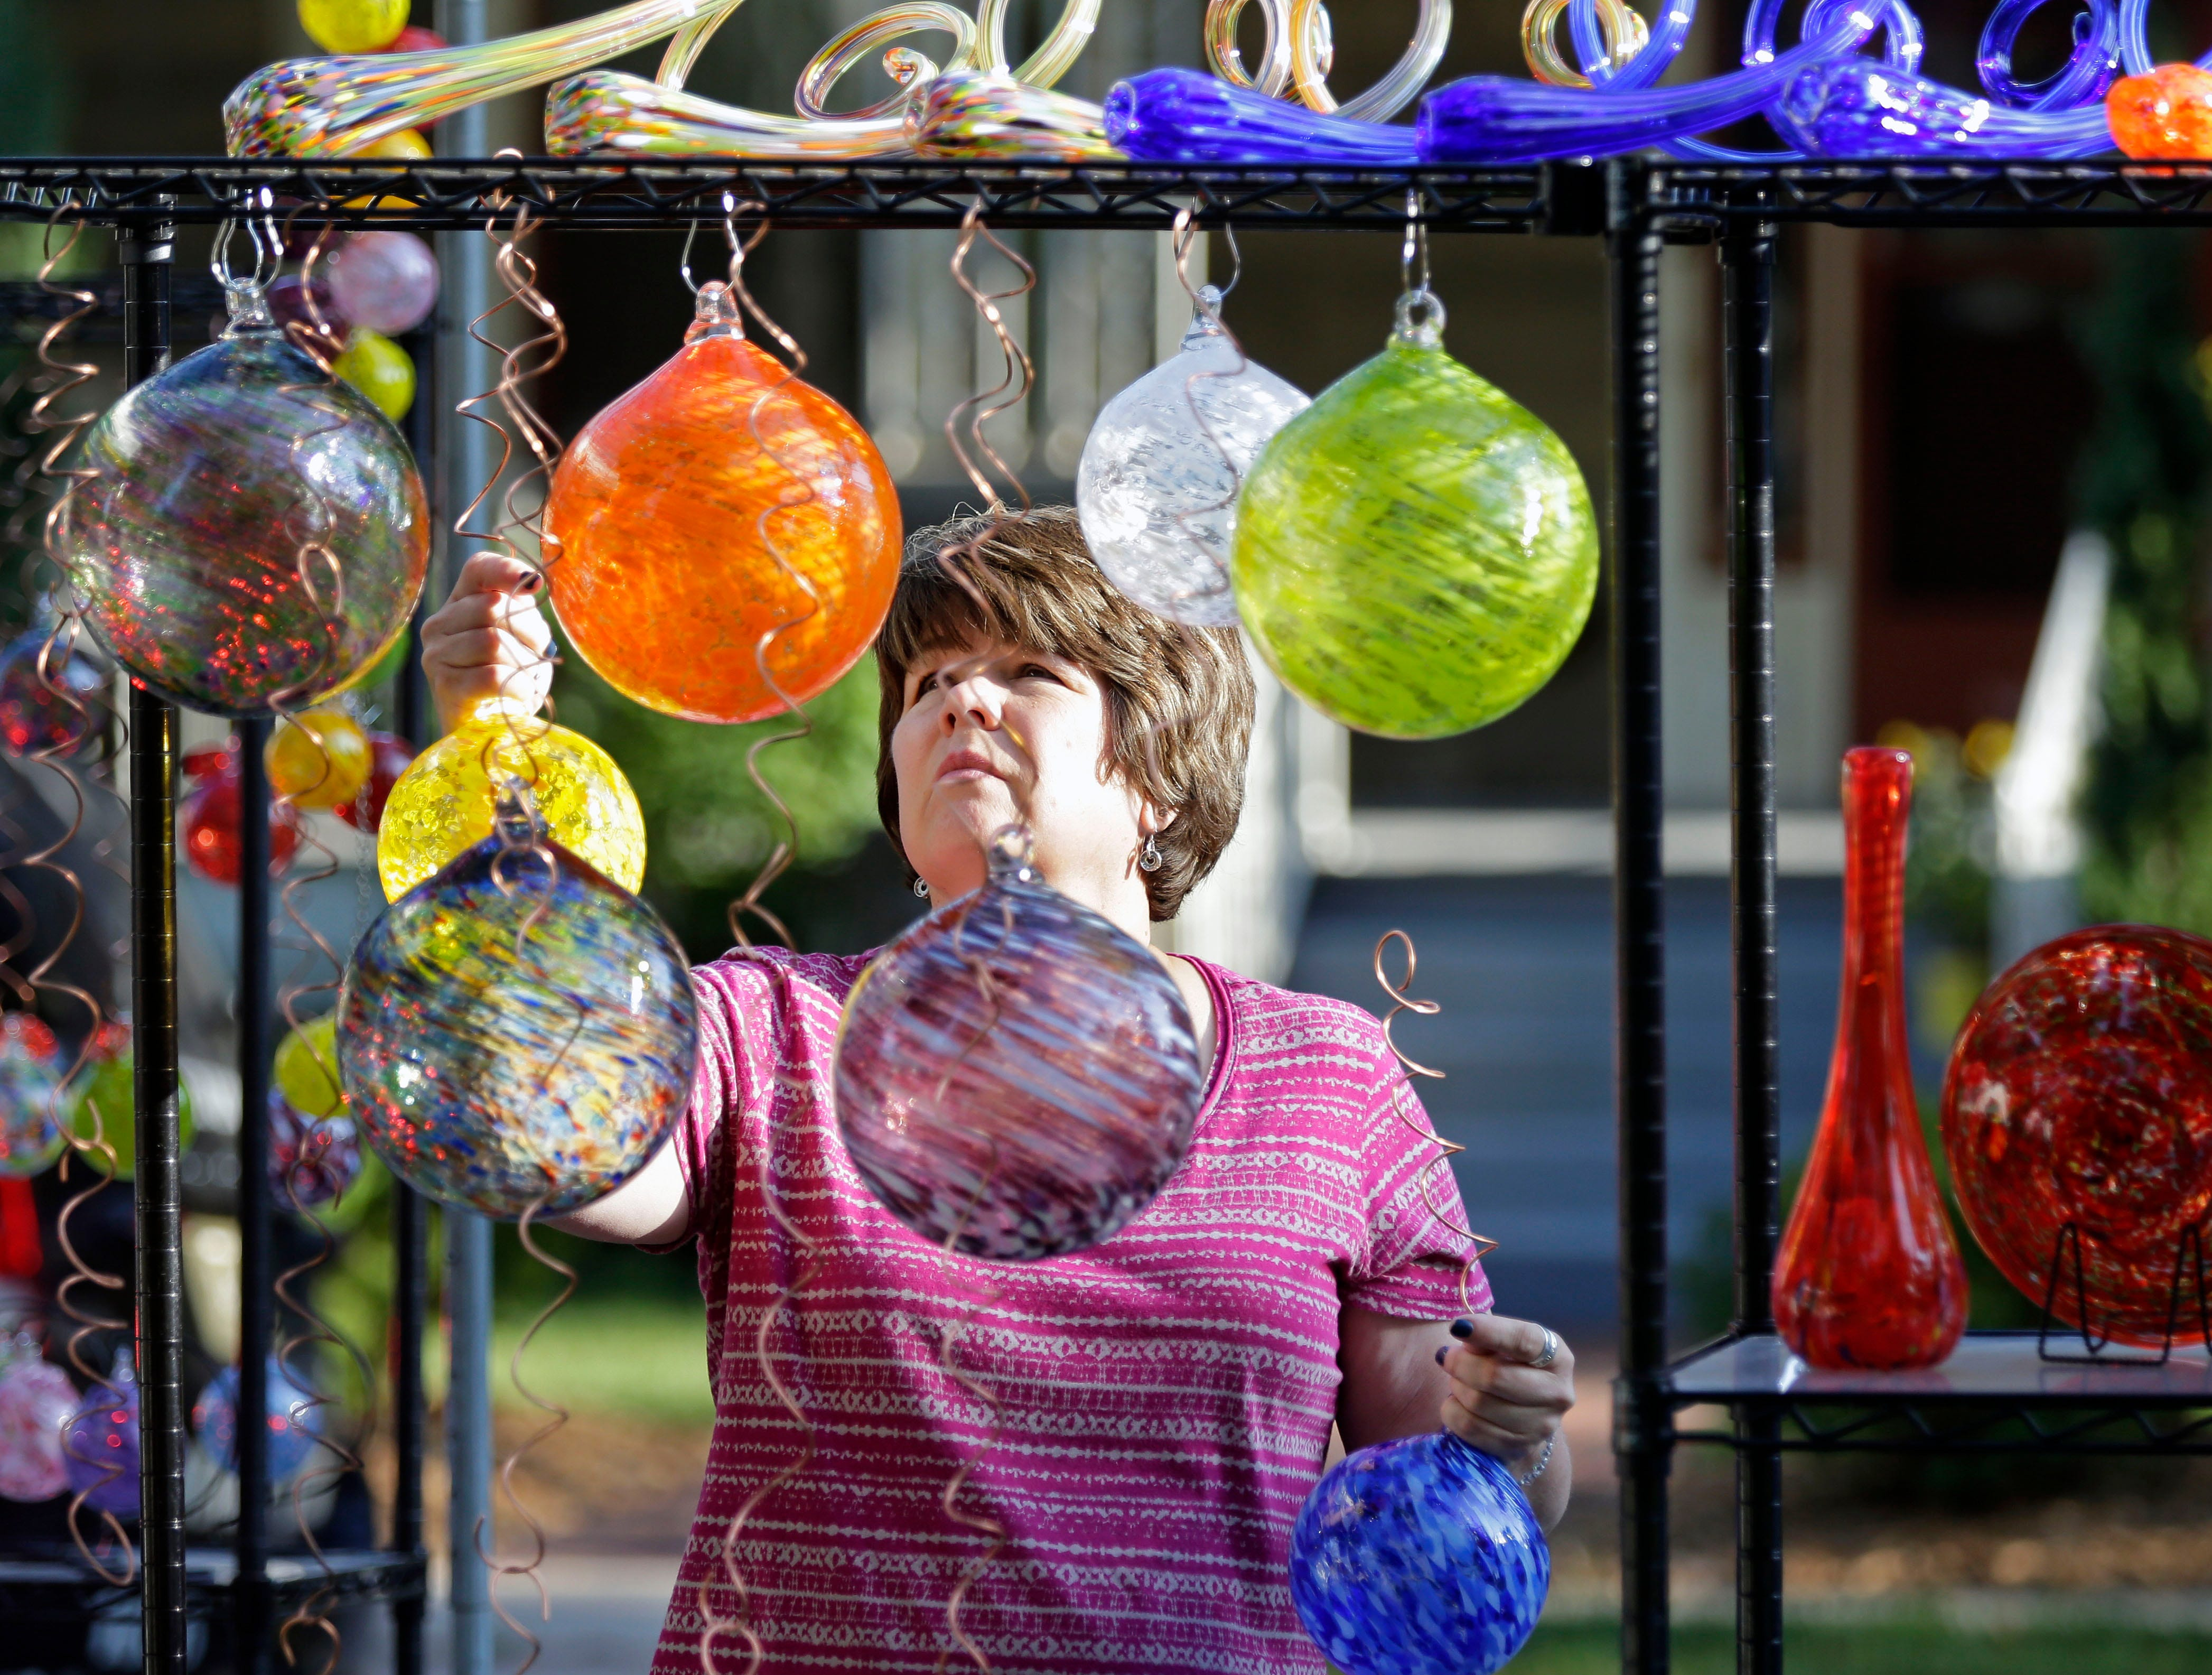 Deb Fenn of Decorah, Iowa gets her booth ready for visitors as the 58th annual Art at the Park takes place Sunday, July 29, 2018, at City Park in Appleton, Wis.Ron Page/USA TODAY NETWORK-Wisconsin